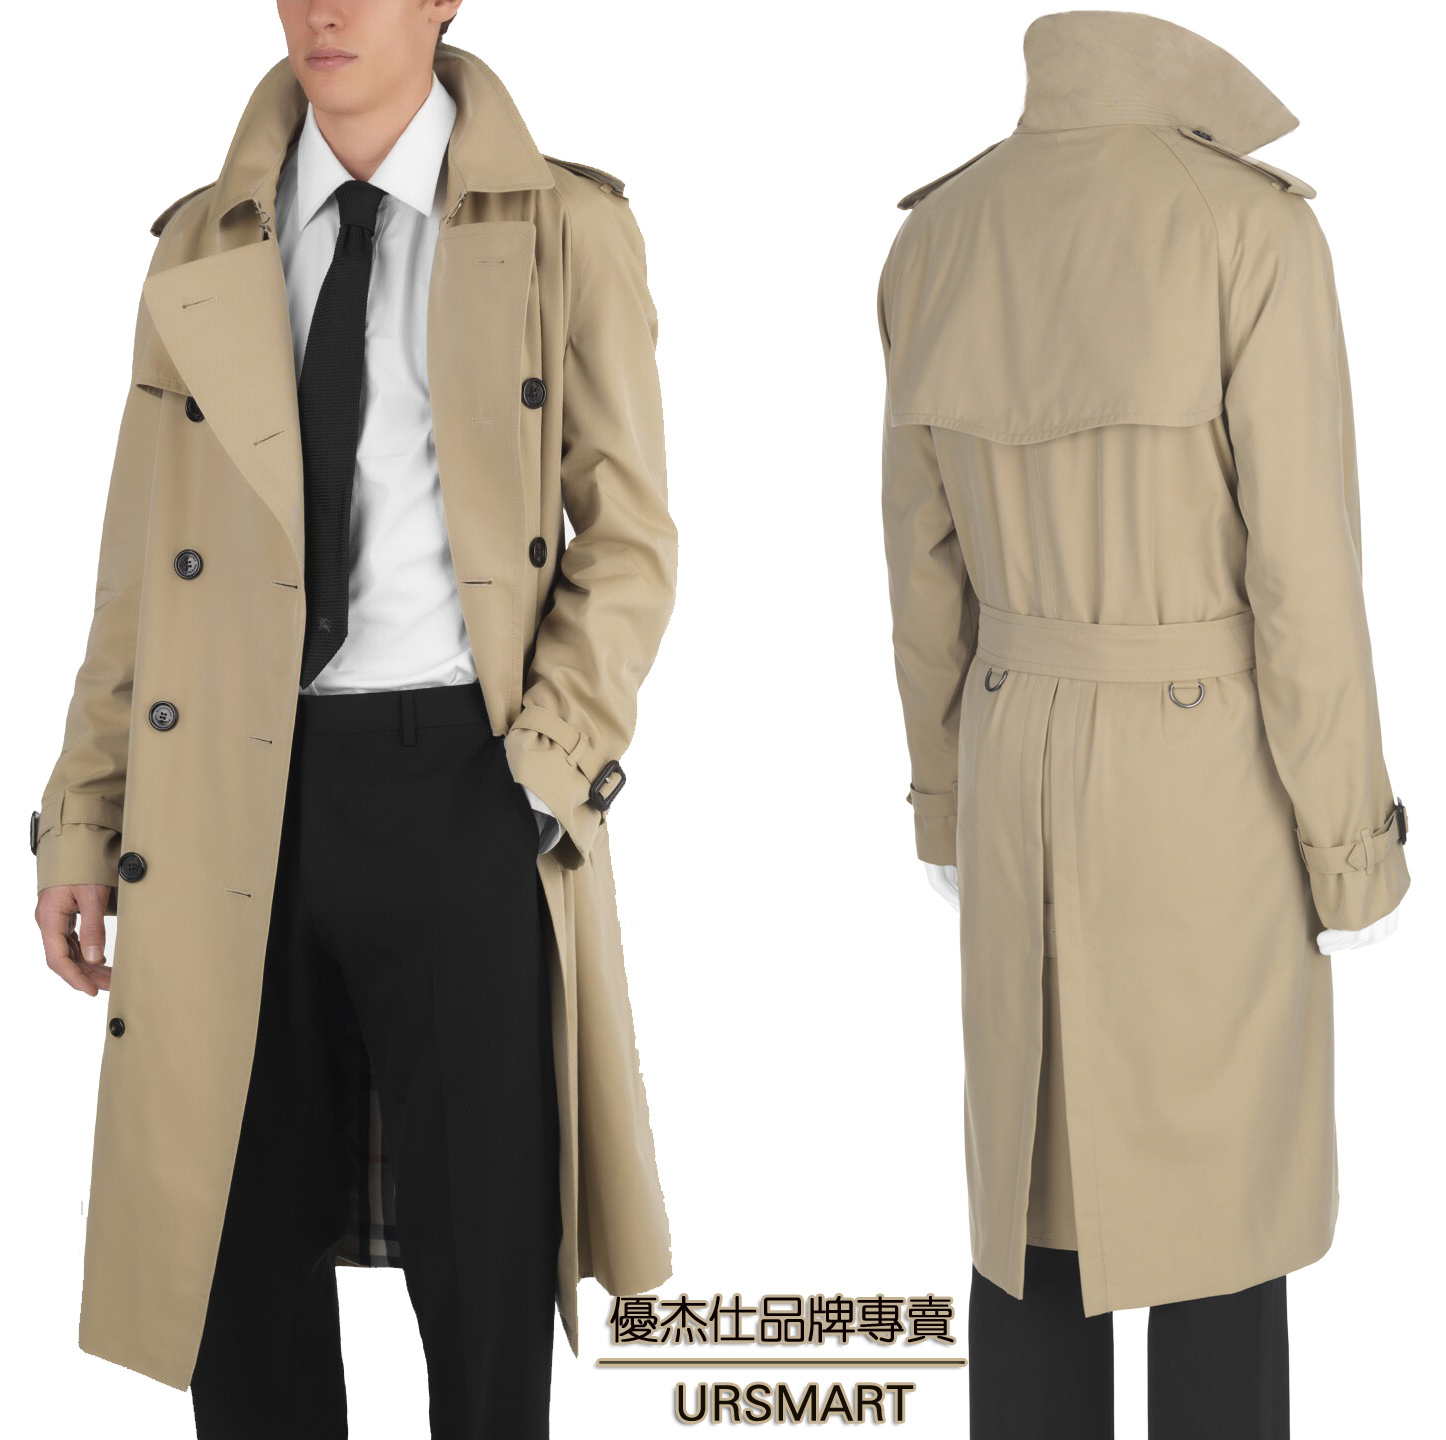 distrib-wjmx2fn9.ga offers Trench Coats at cheap prices, so you can shop from a huge selection of Trench Coats, FREE Shipping available worldwide. Turn-Down Collar Epaulet Single Breasted Long Sleeve Trench Coat For Men - Army Green - L. Belted Wrap Trench Coat - Black - XL.